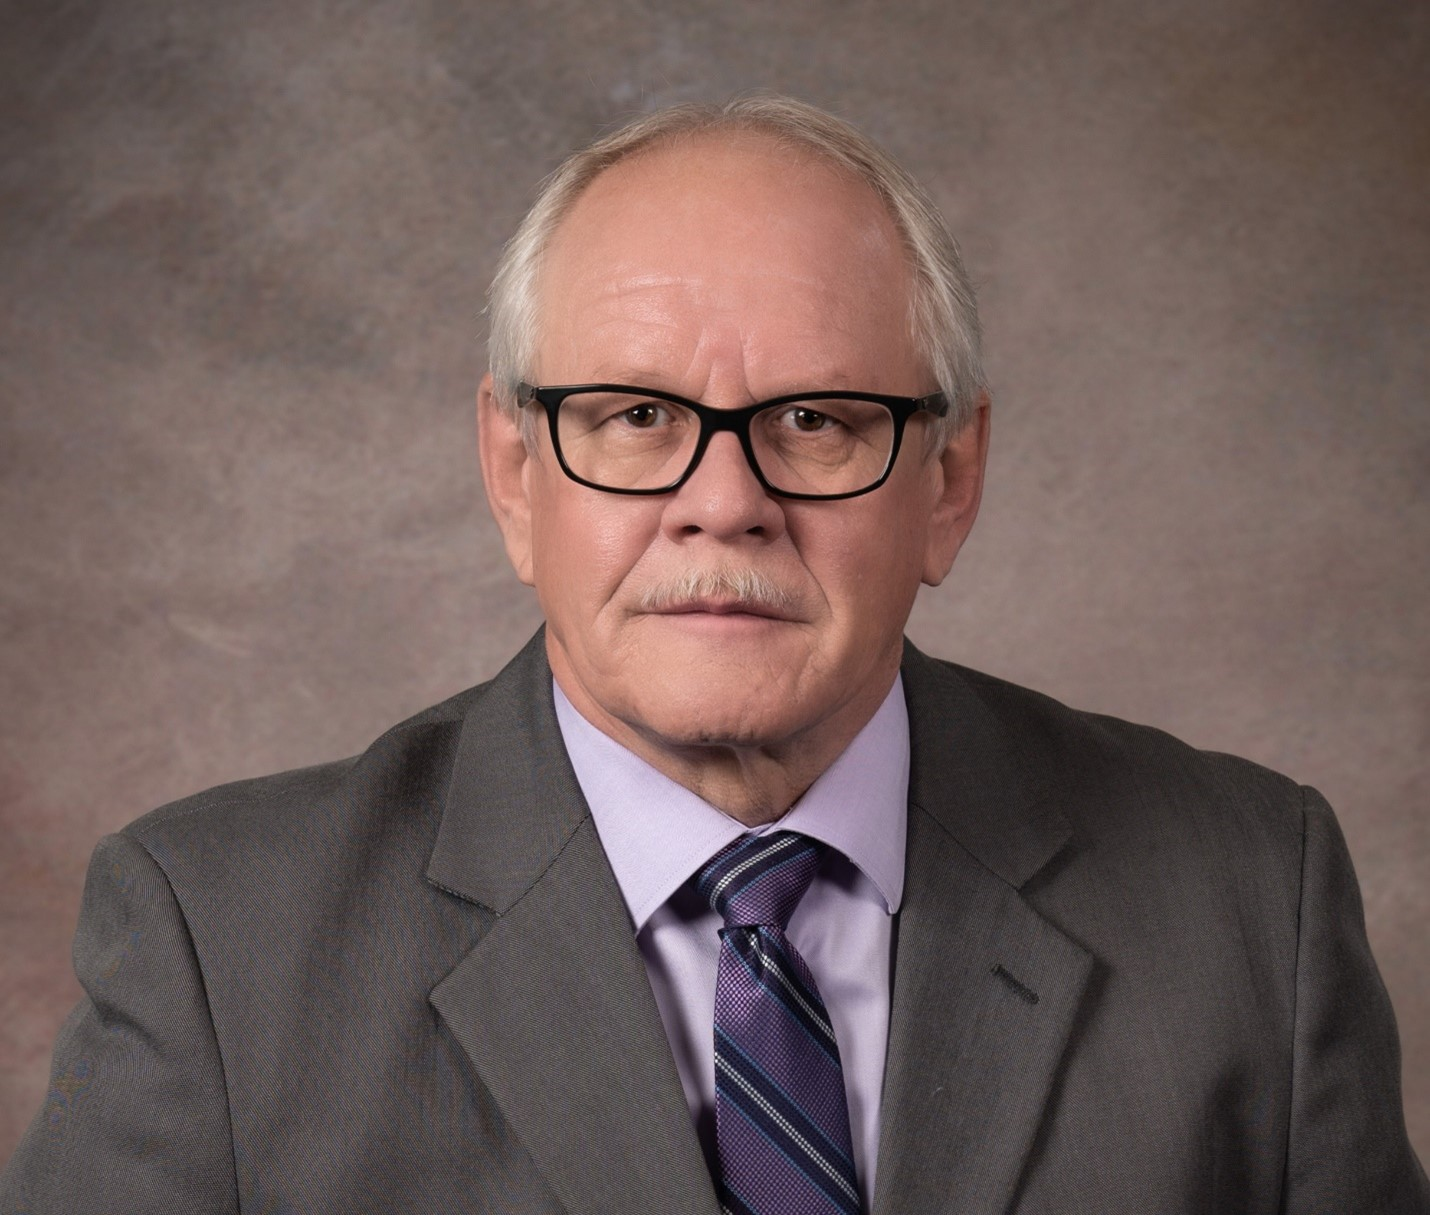 Ron McCullough, a white man with white hair on the sides and a white moustache, sits in front of a mottled brown background, wearing black glasses, a grey suit, a purple shirt, and a patterned purple tie